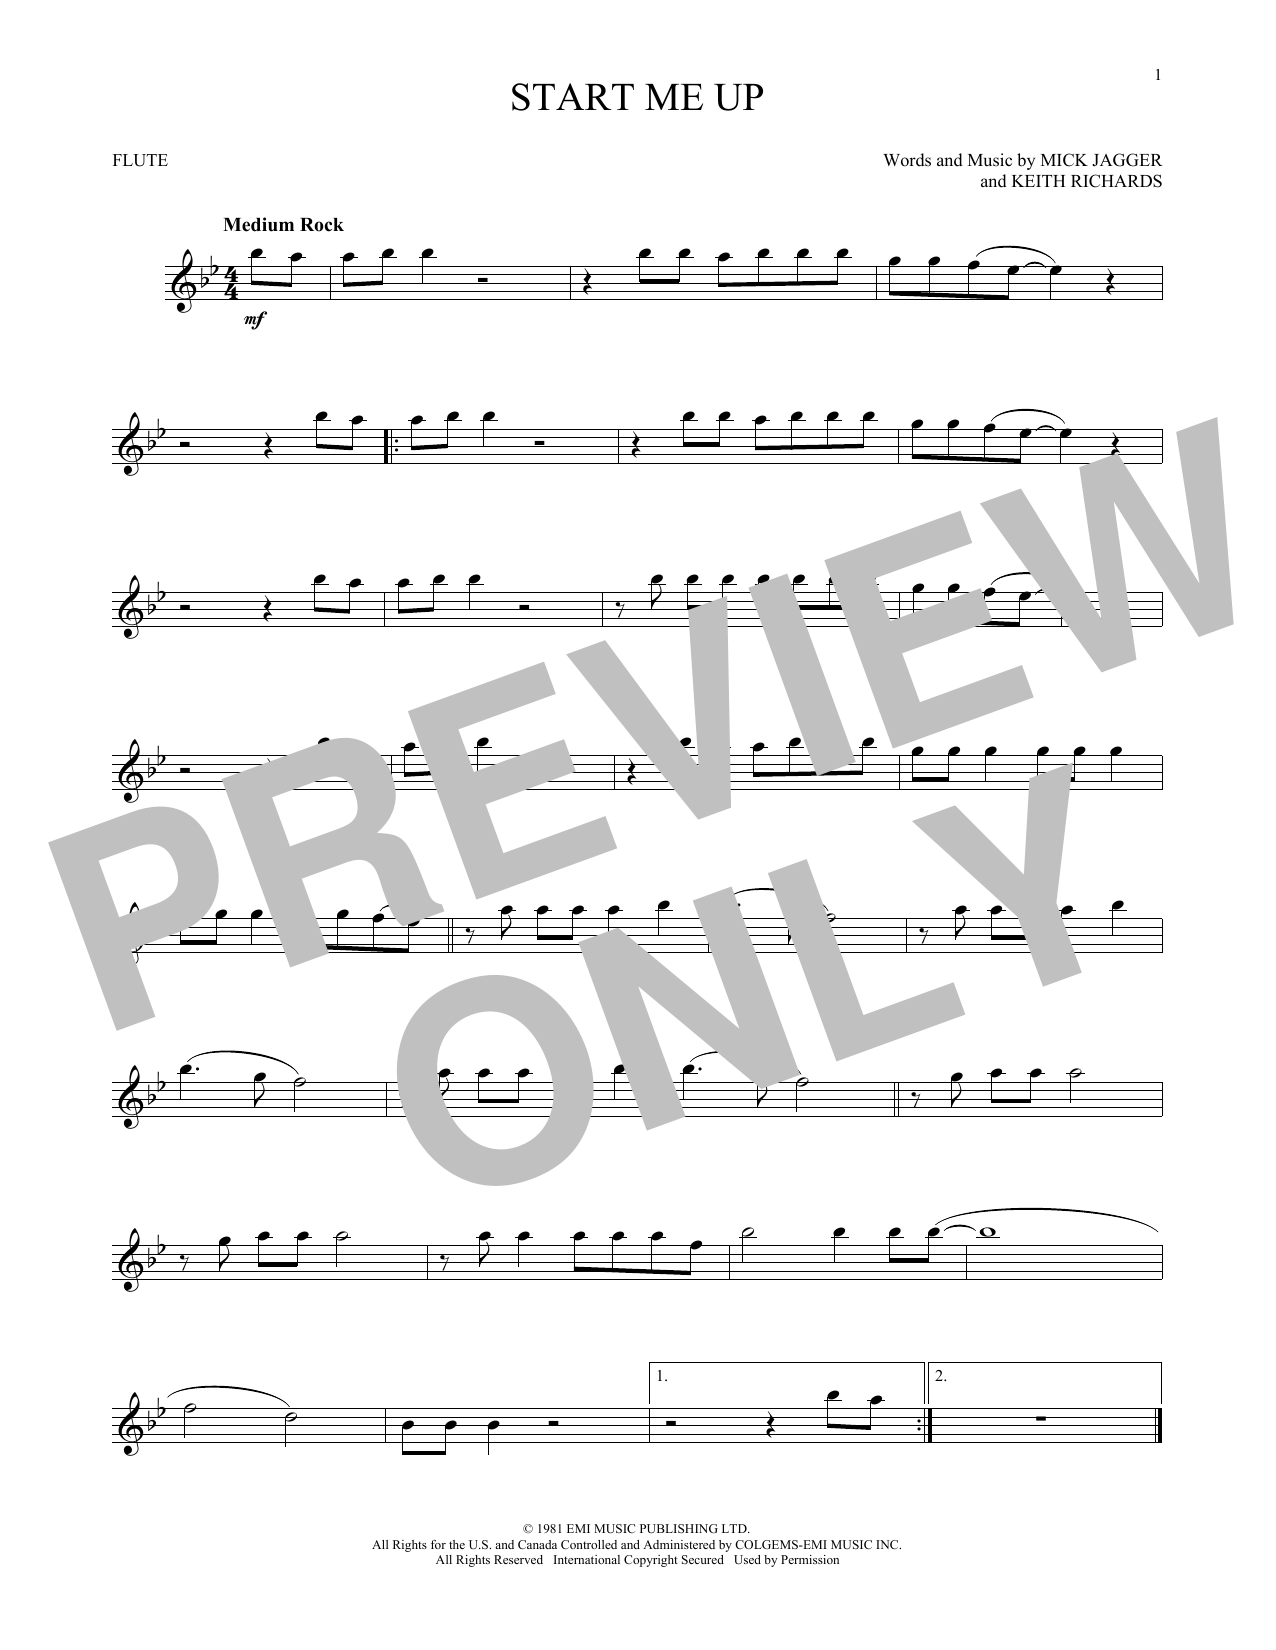 Start Me Up (Flute Solo)